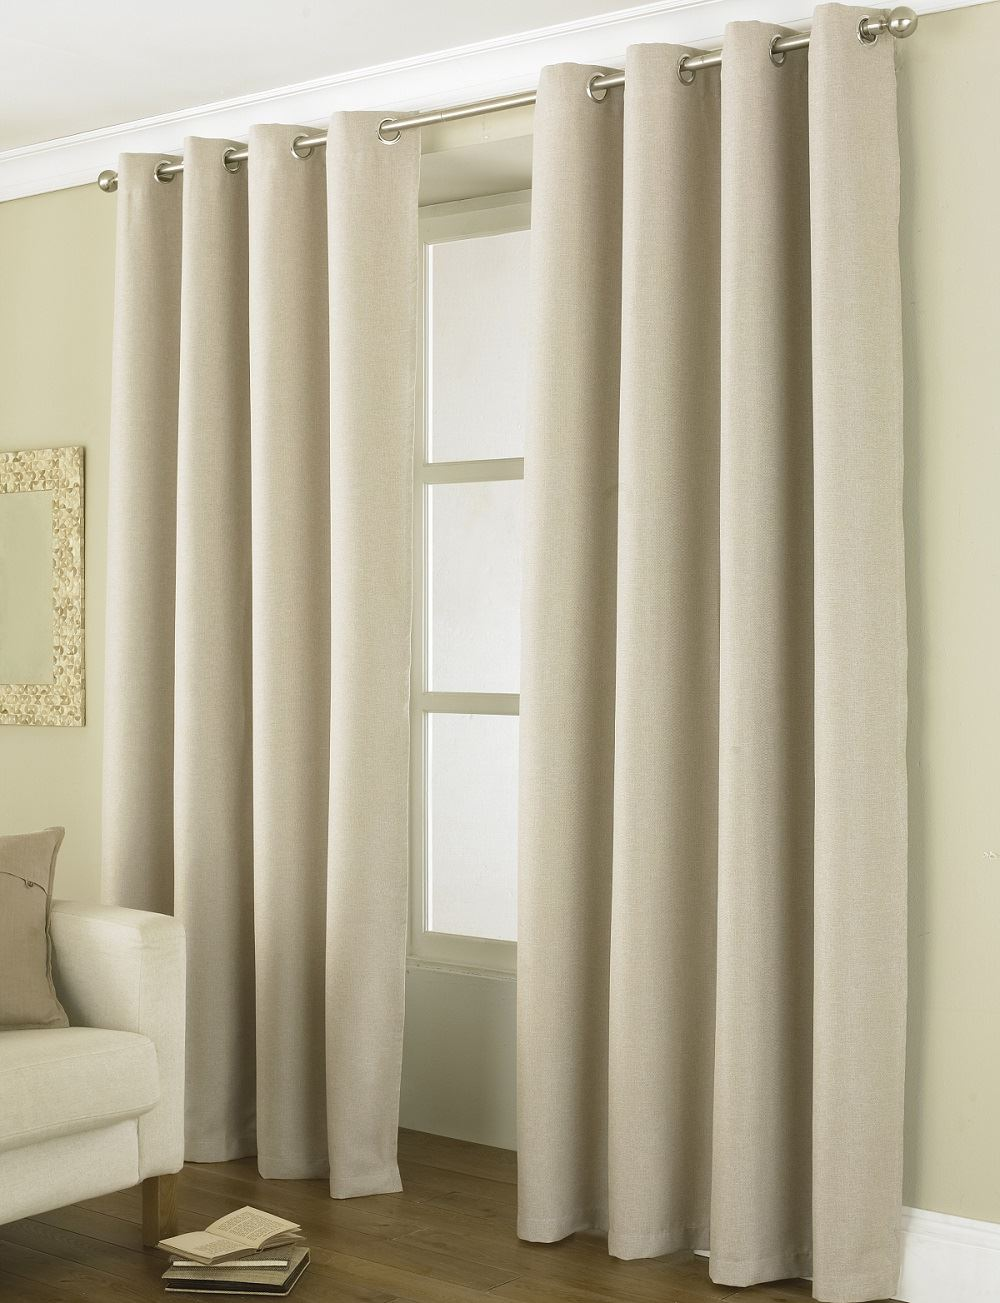 linea luxury 72 90 long blackout energy saver ring top eyelet curtain pairs ebay. Black Bedroom Furniture Sets. Home Design Ideas